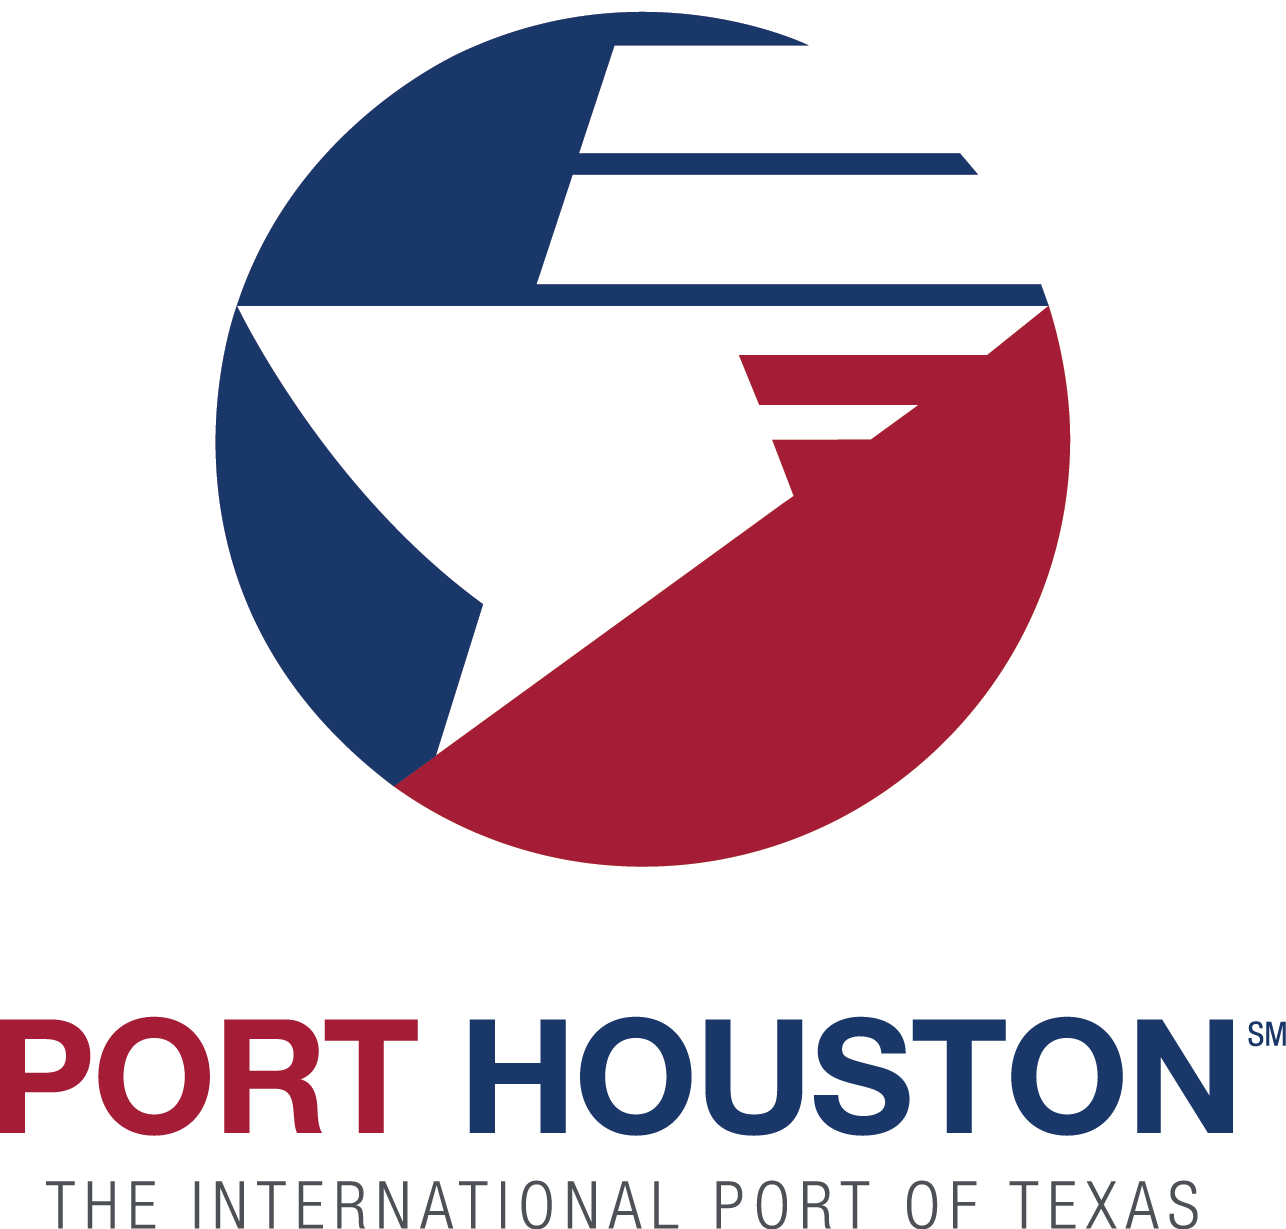 Port Houston logo